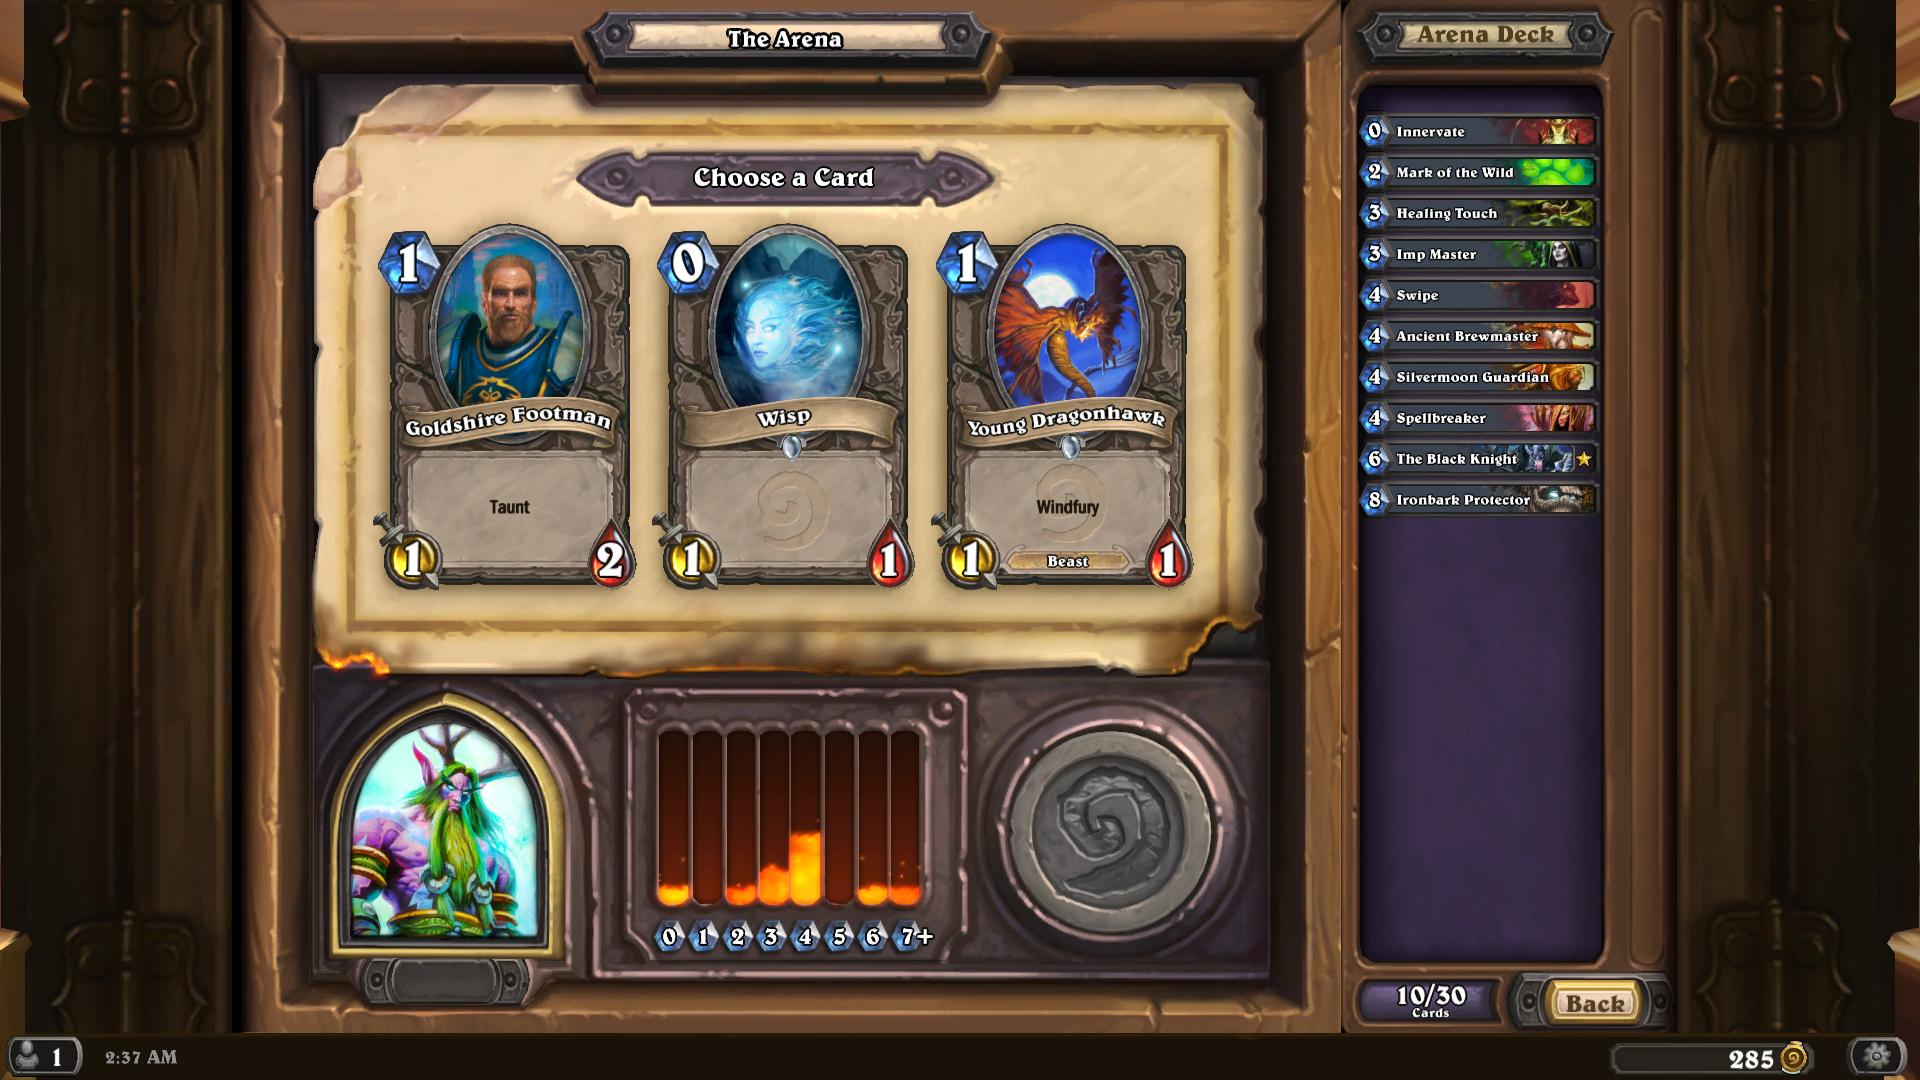 Top 5 Card Picks For Arena Esports Edition